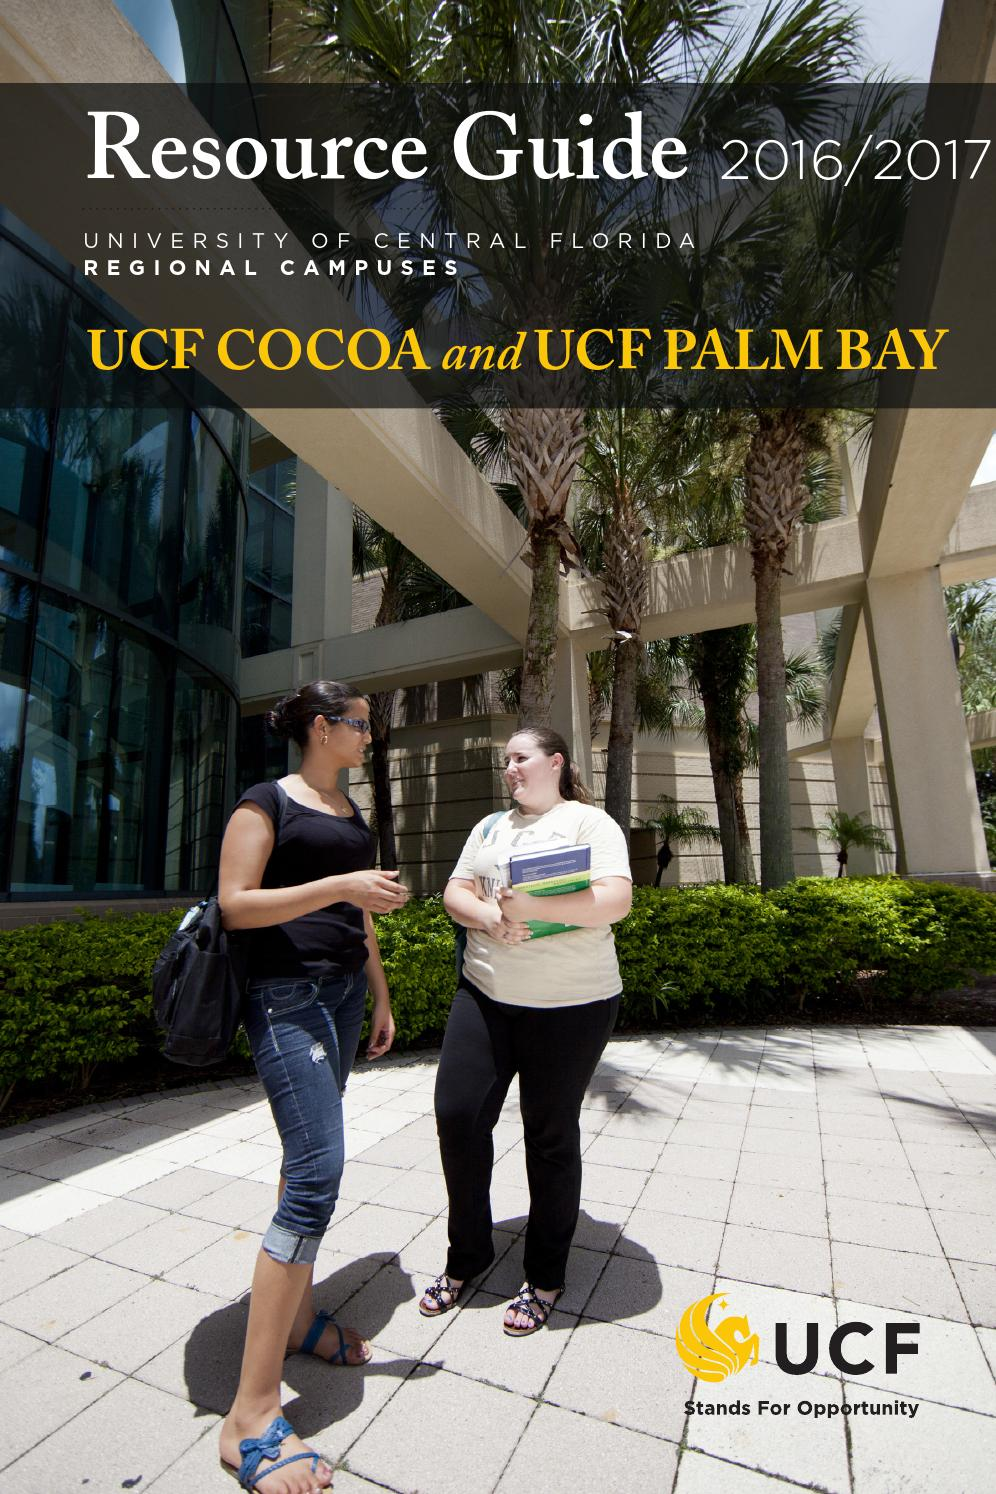 2017 Student Resource Guide For Ucf Cocoa And Ucf Palm Bay By Ucf  Regional Campuses  Issuu